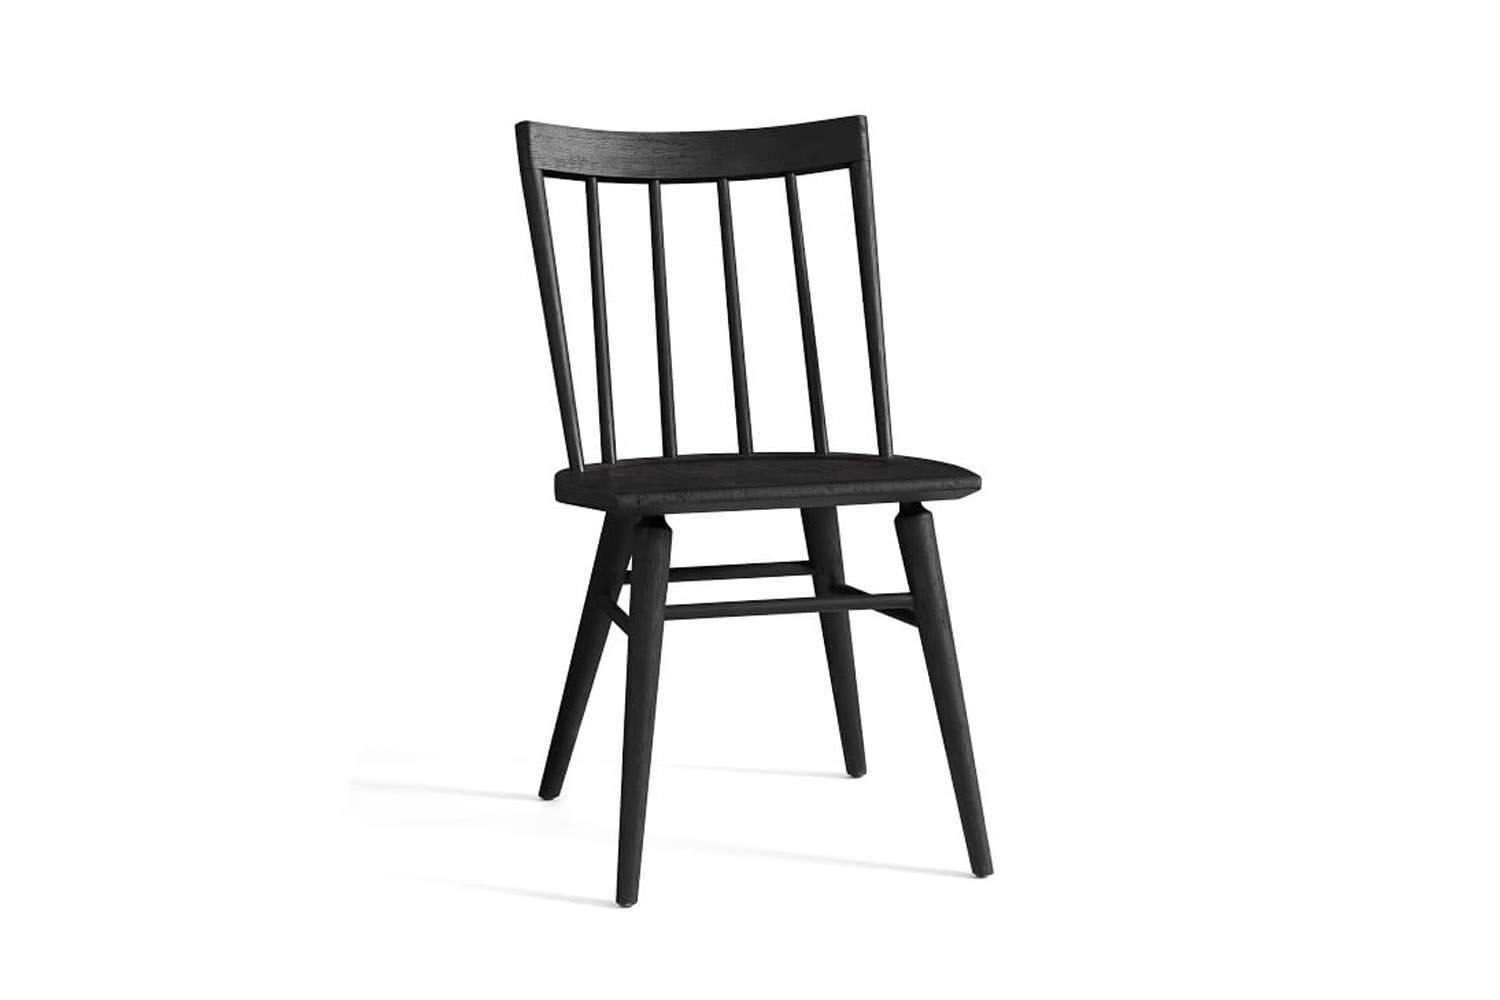 The Pottery Barn Shay Dining Chair is $9.